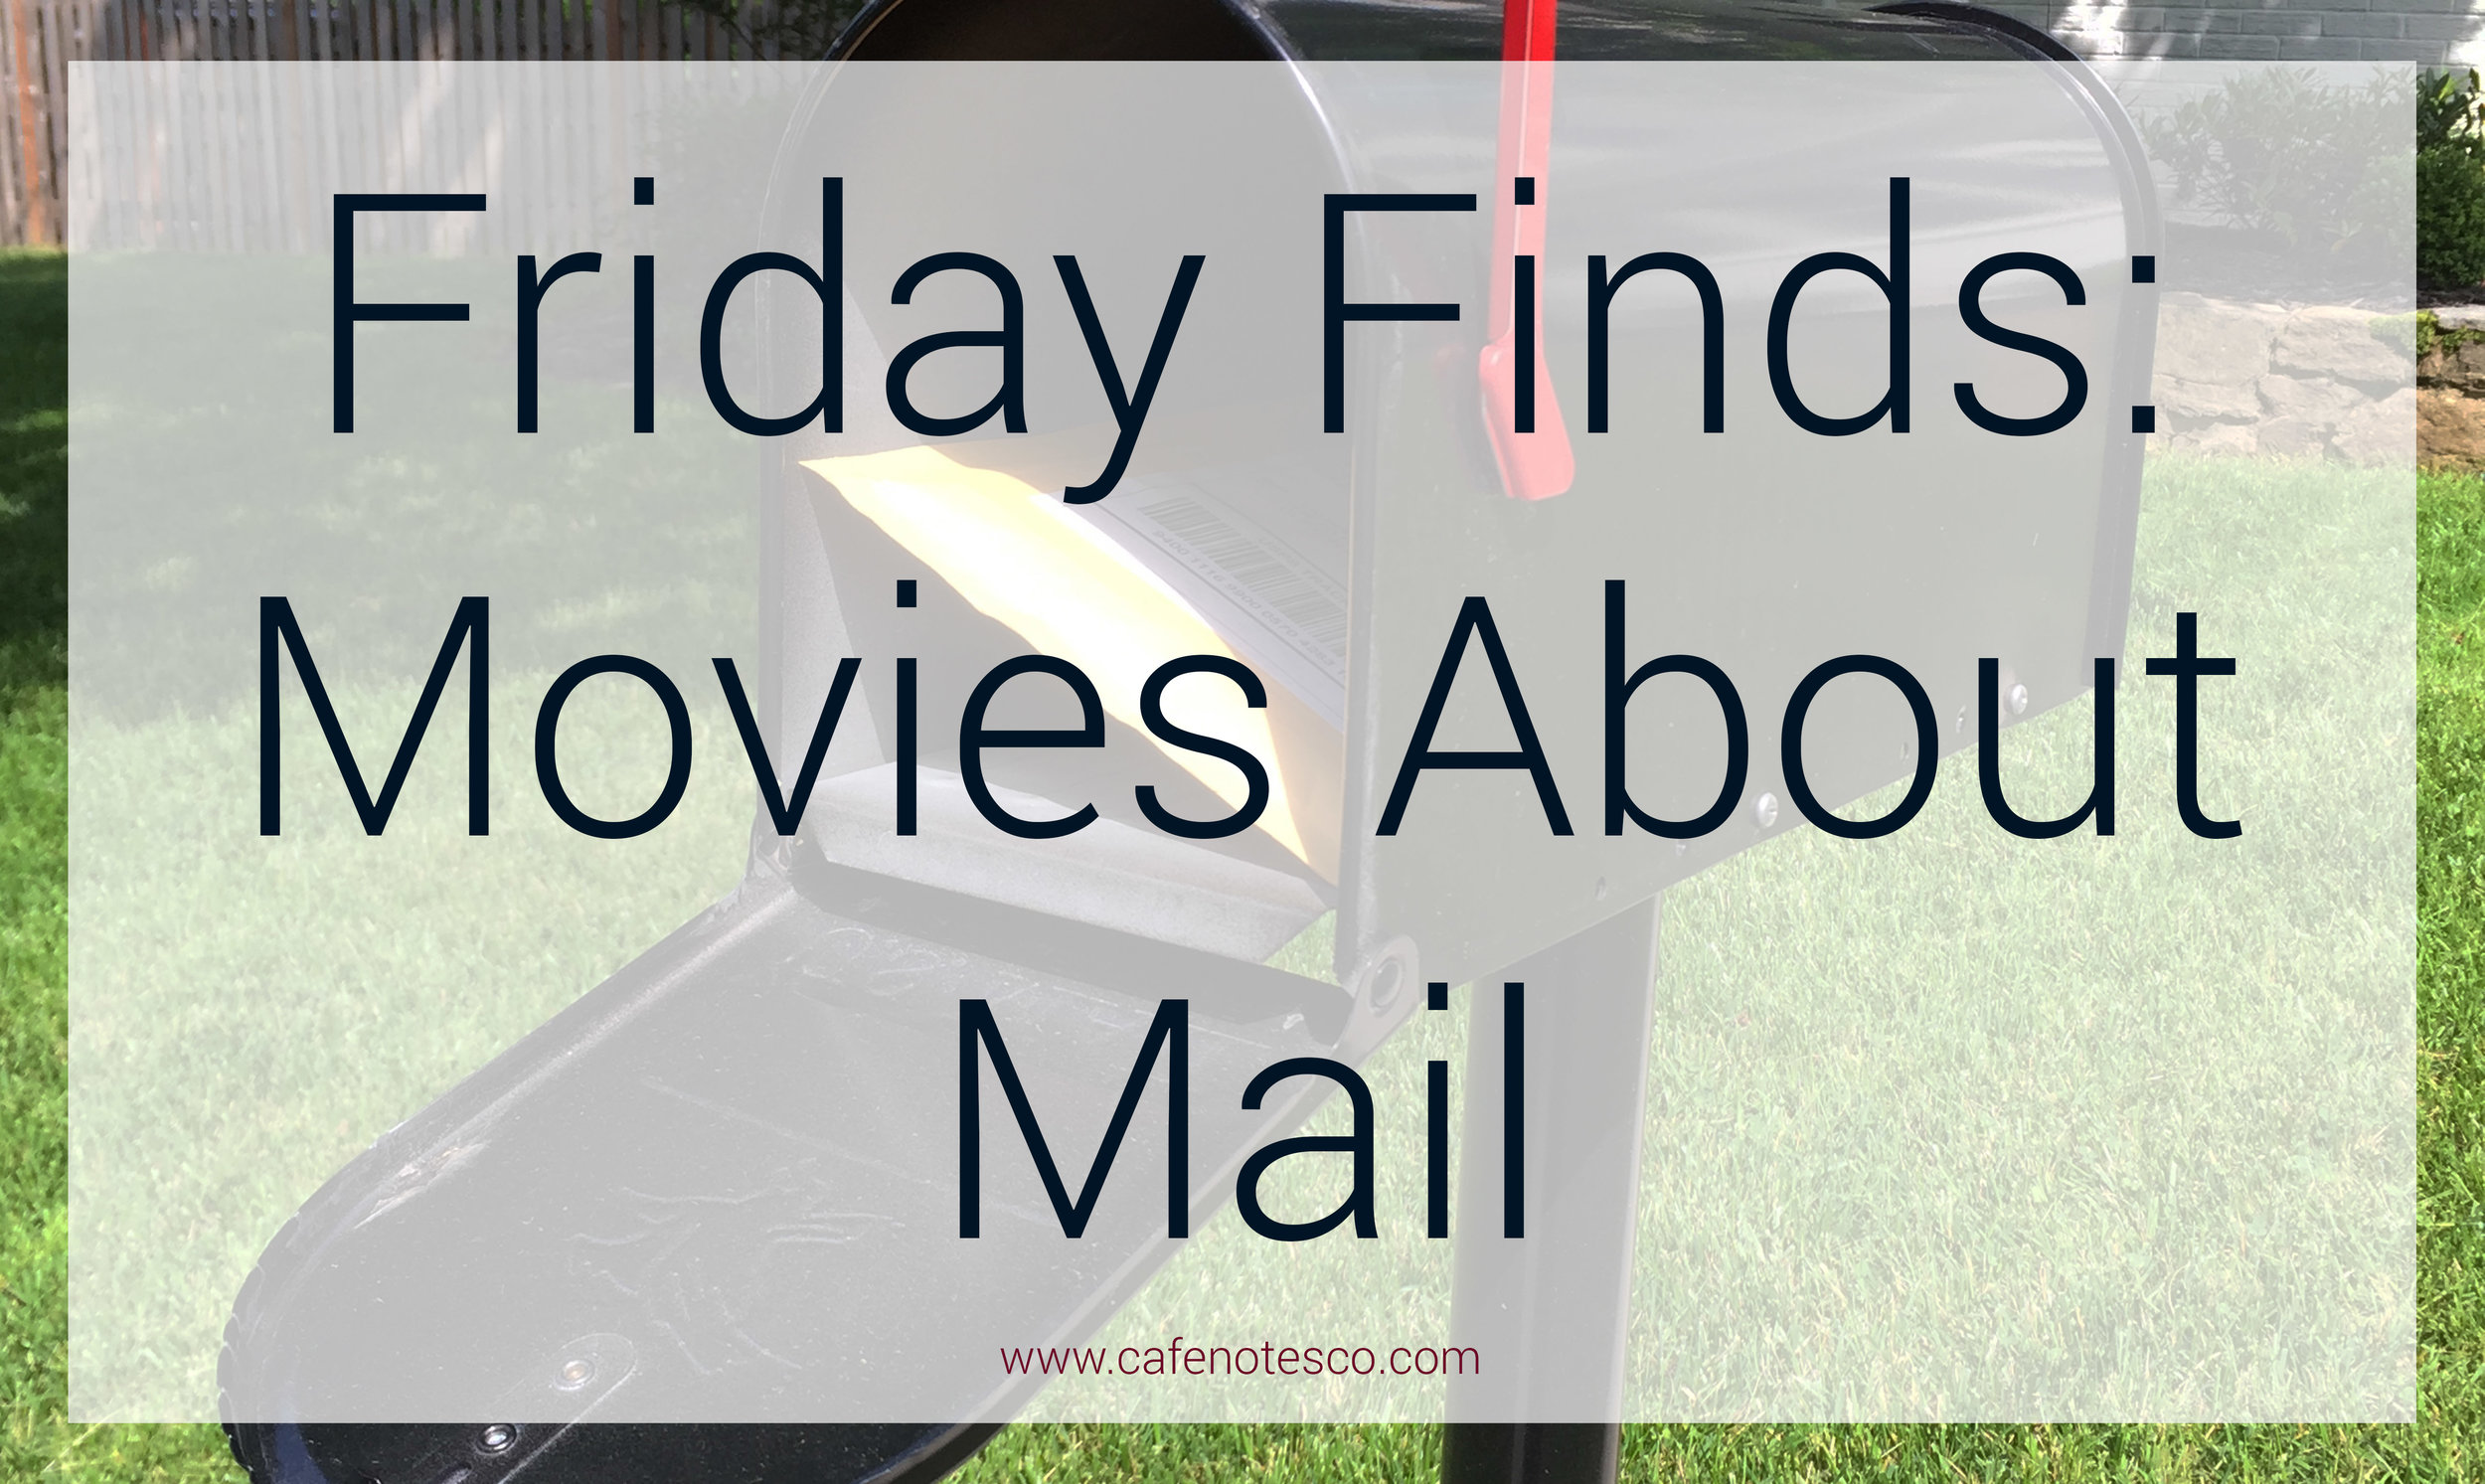 Cafe Notes + Company Friday Finds Movies About Mail.jpg